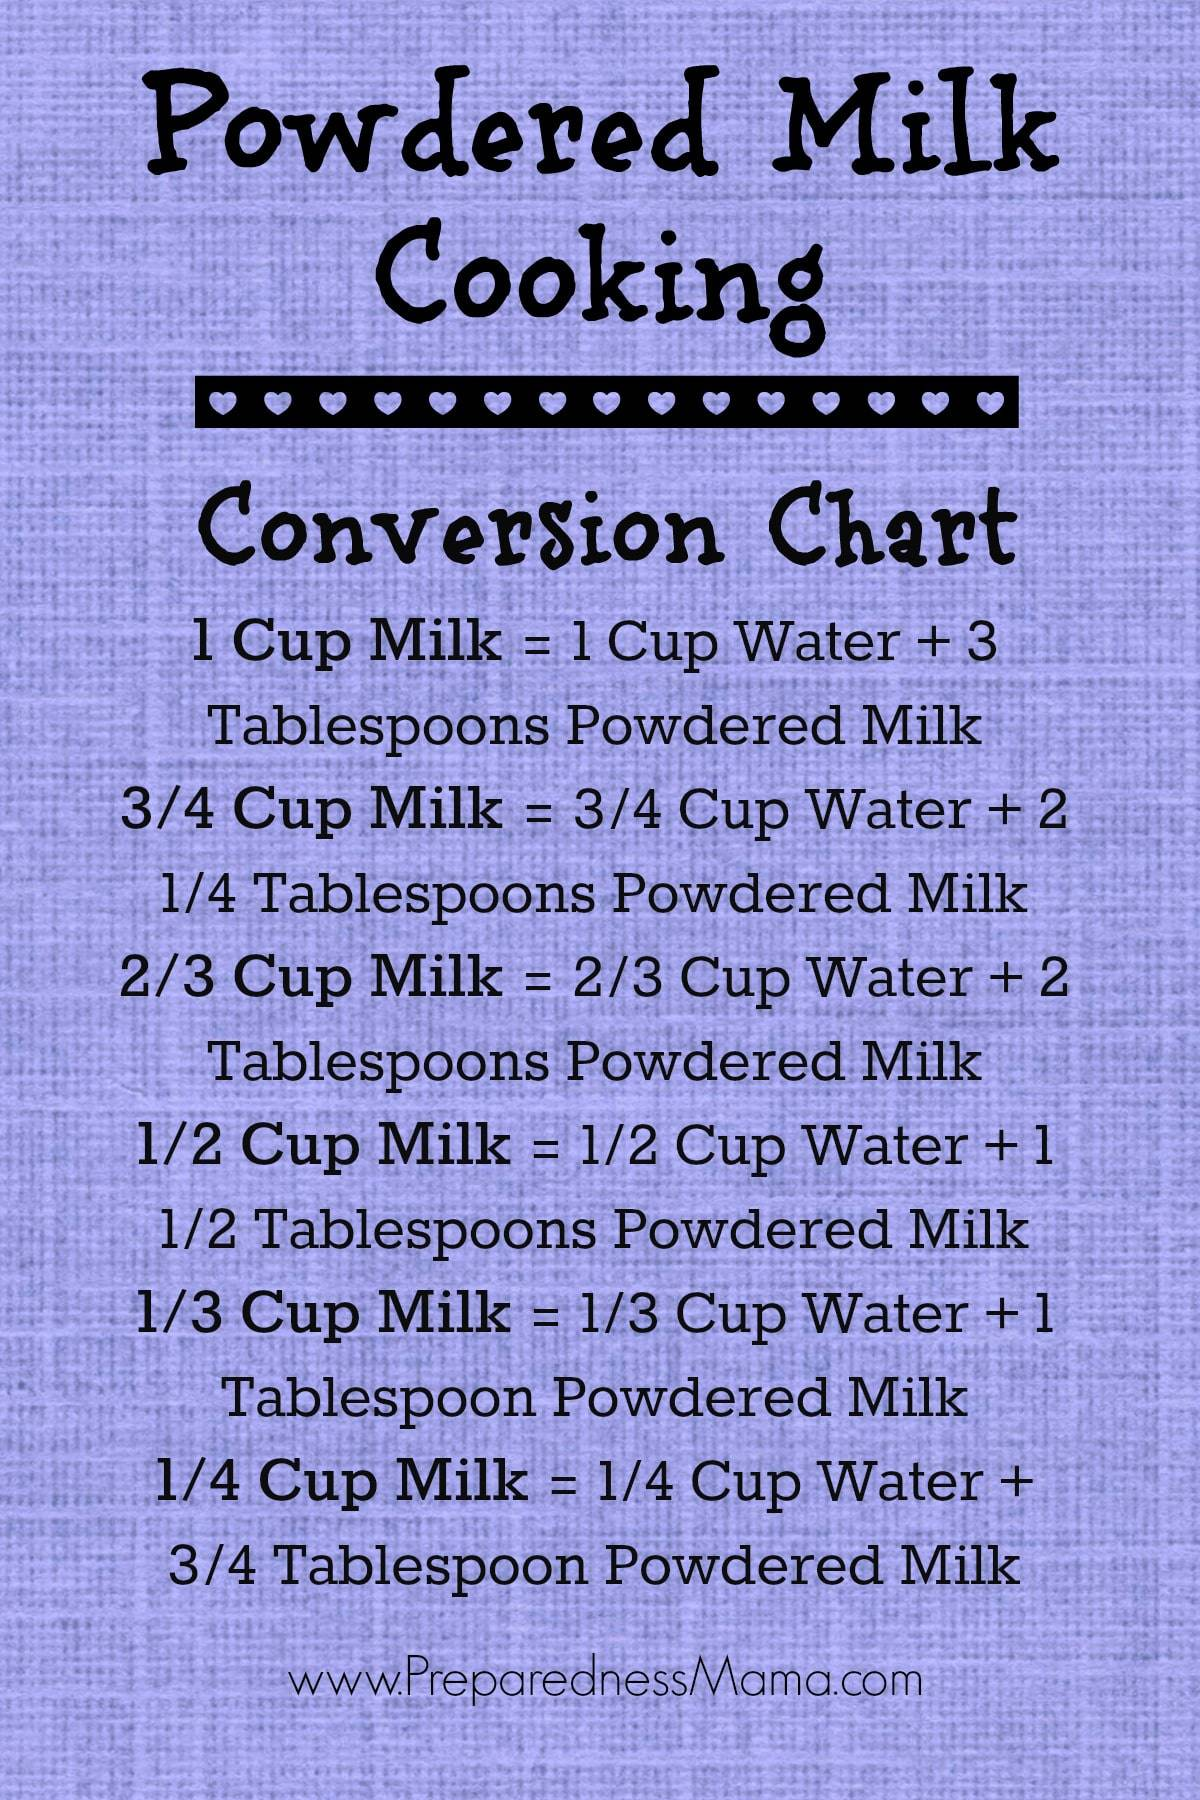 Powdered Milk Cooking Tips And Recipes Preparednessmama